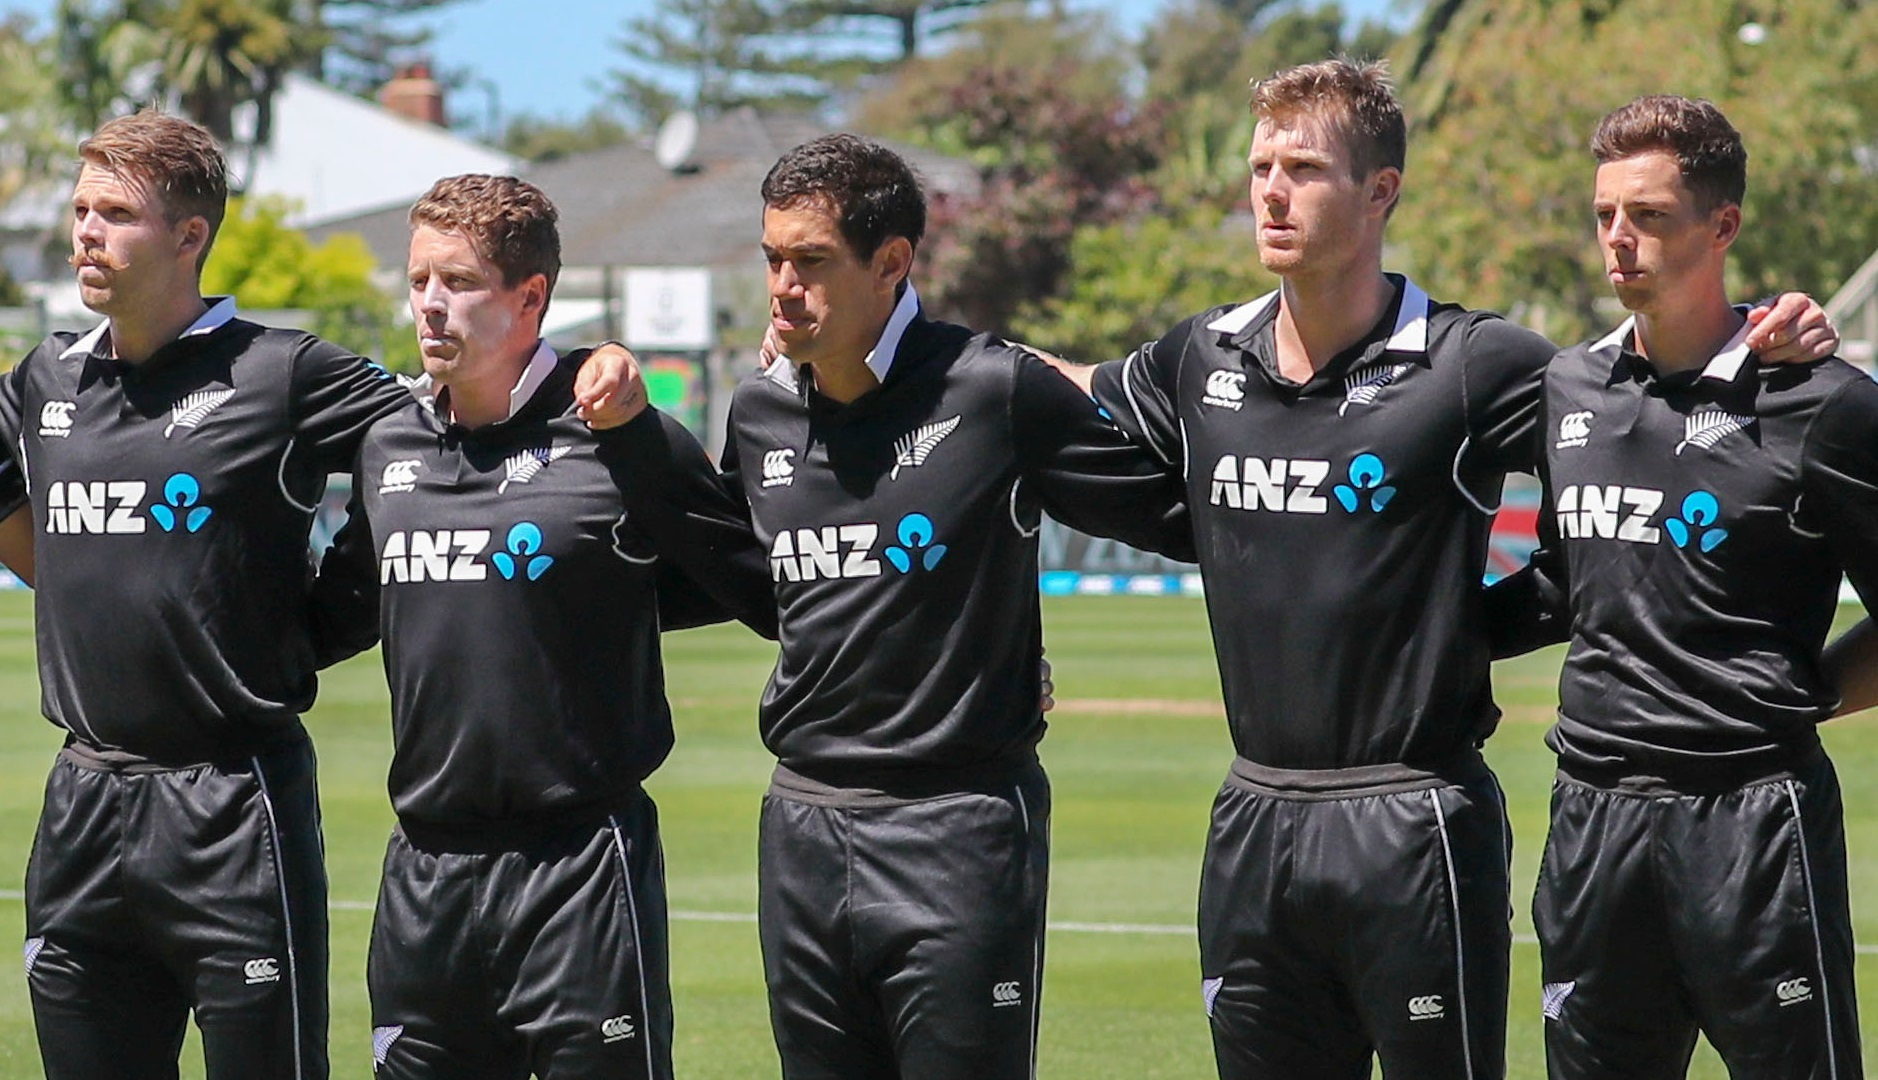 Cricket: The Black Caps World Cup squad - according to